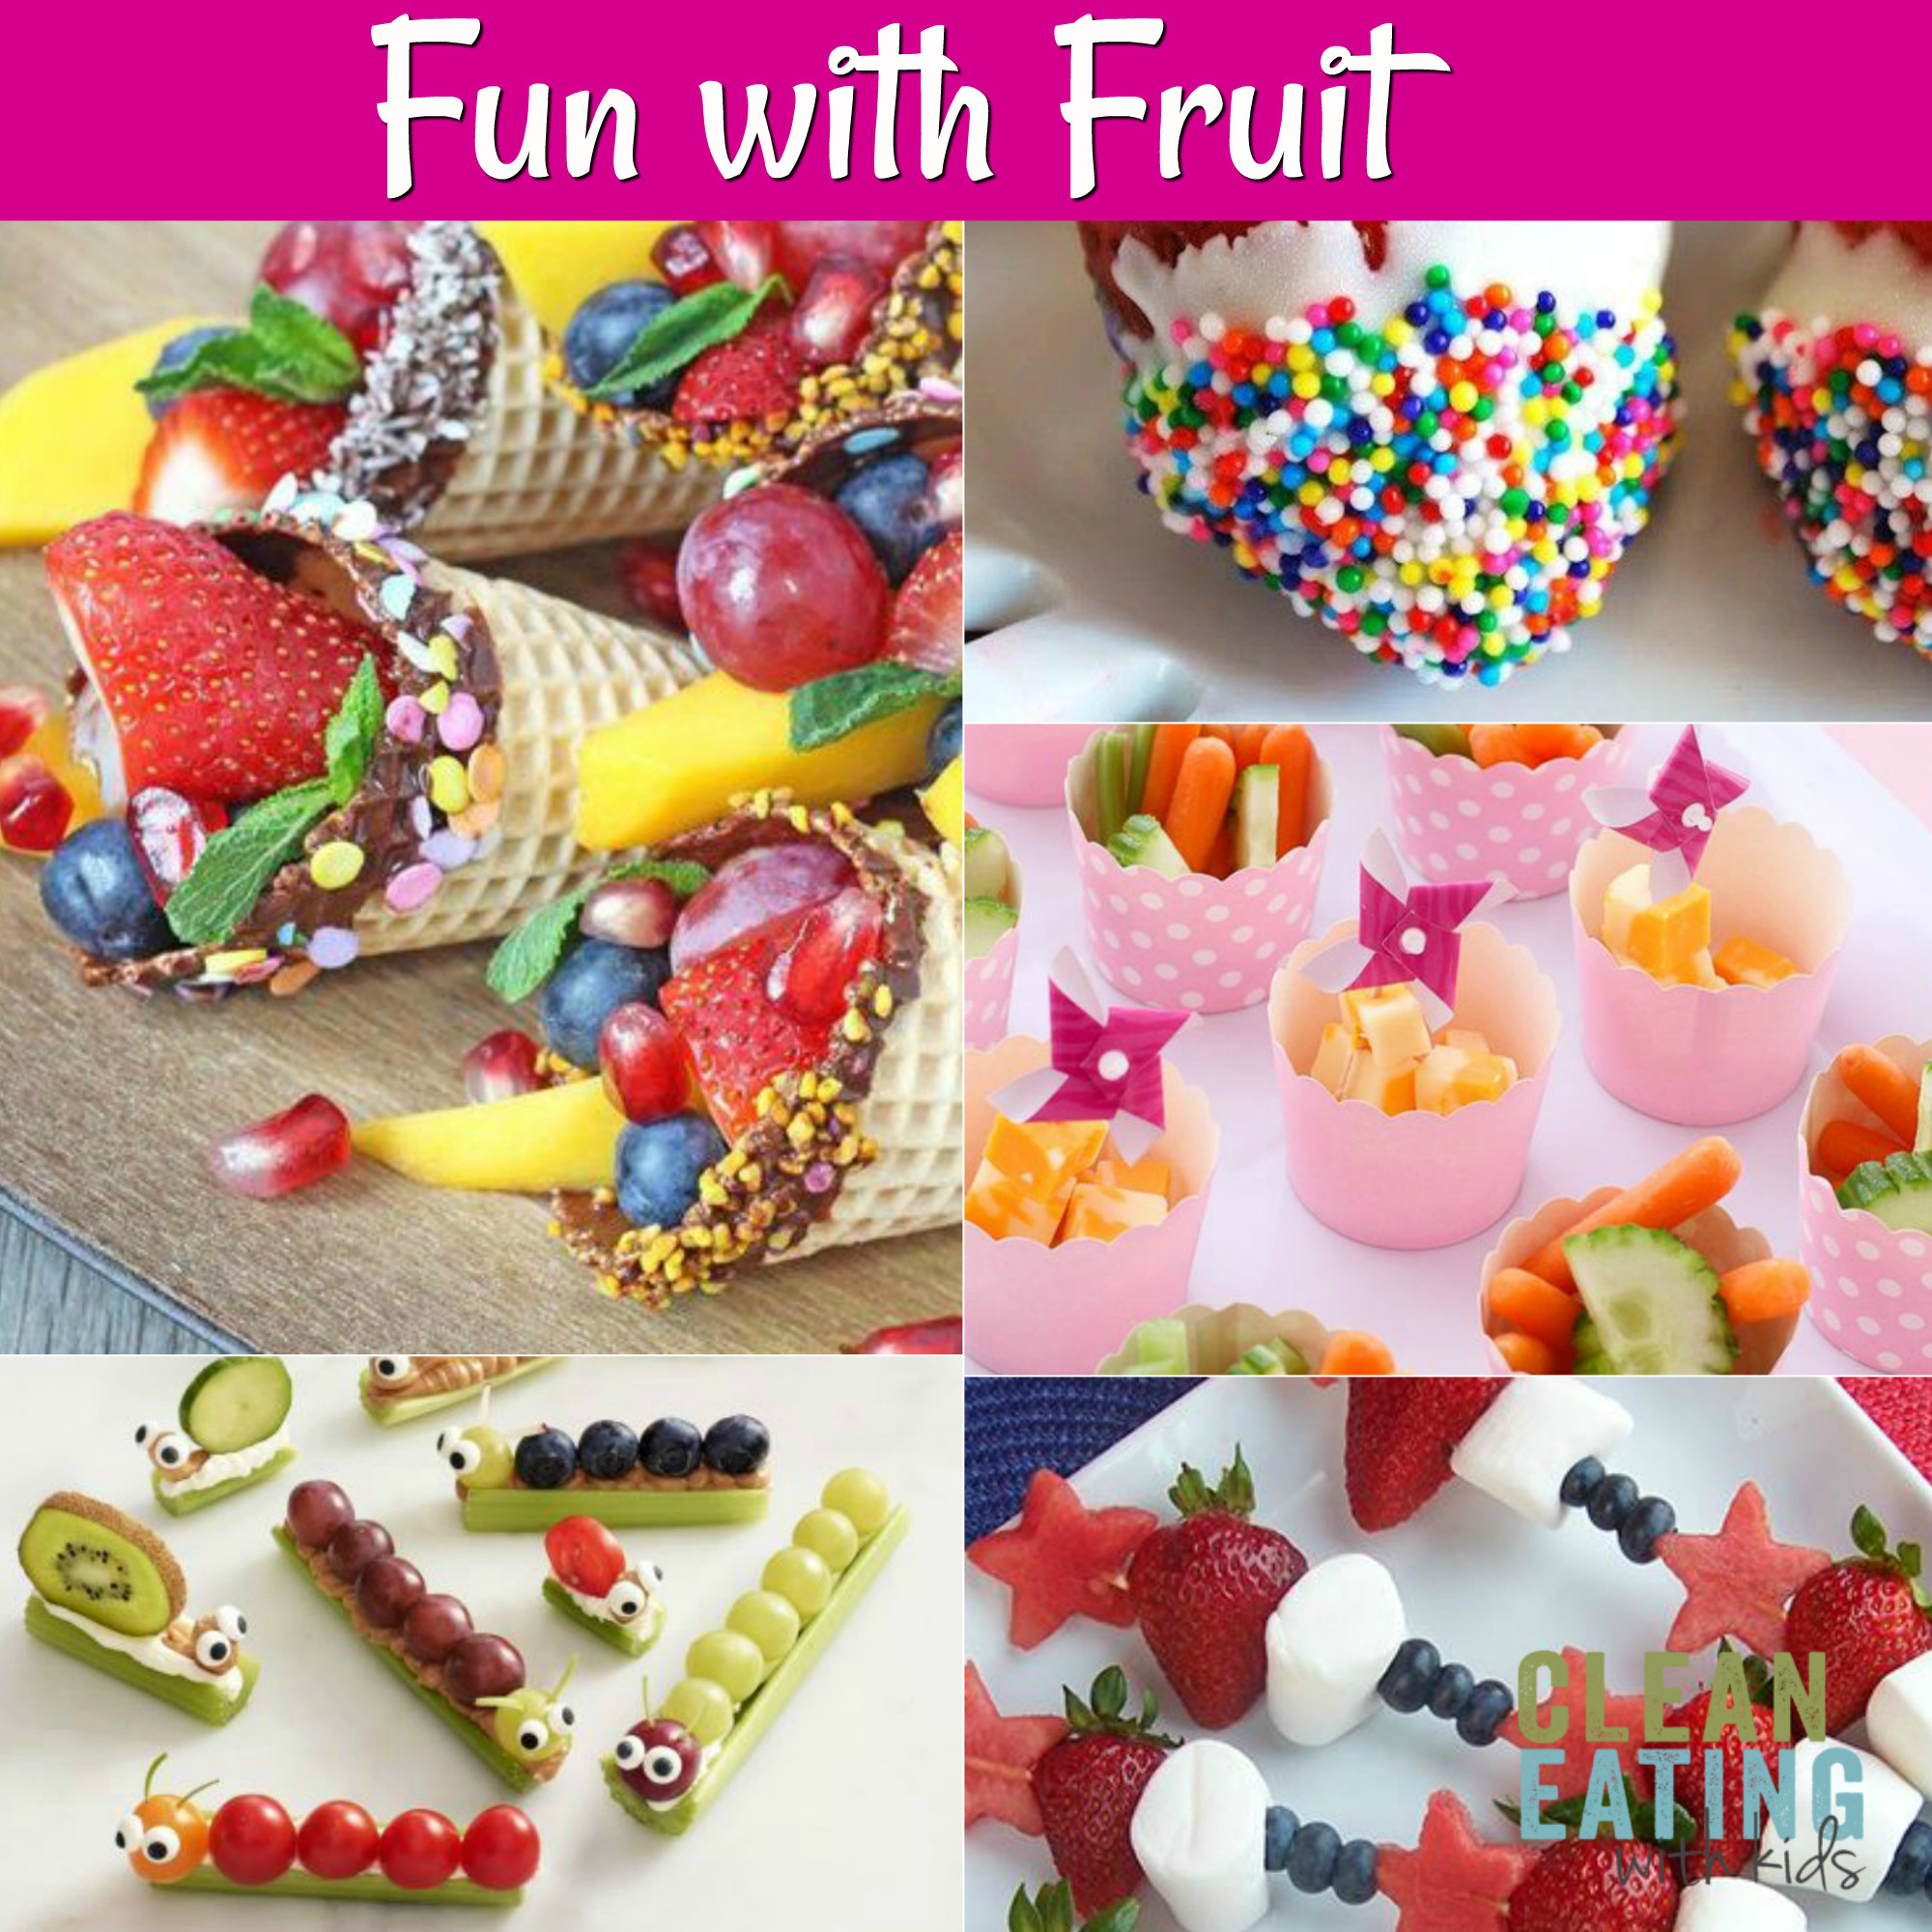 Kids Birthday Party Snacks  25 Healthy Birthday Party Food Ideas Clean Eating with kids